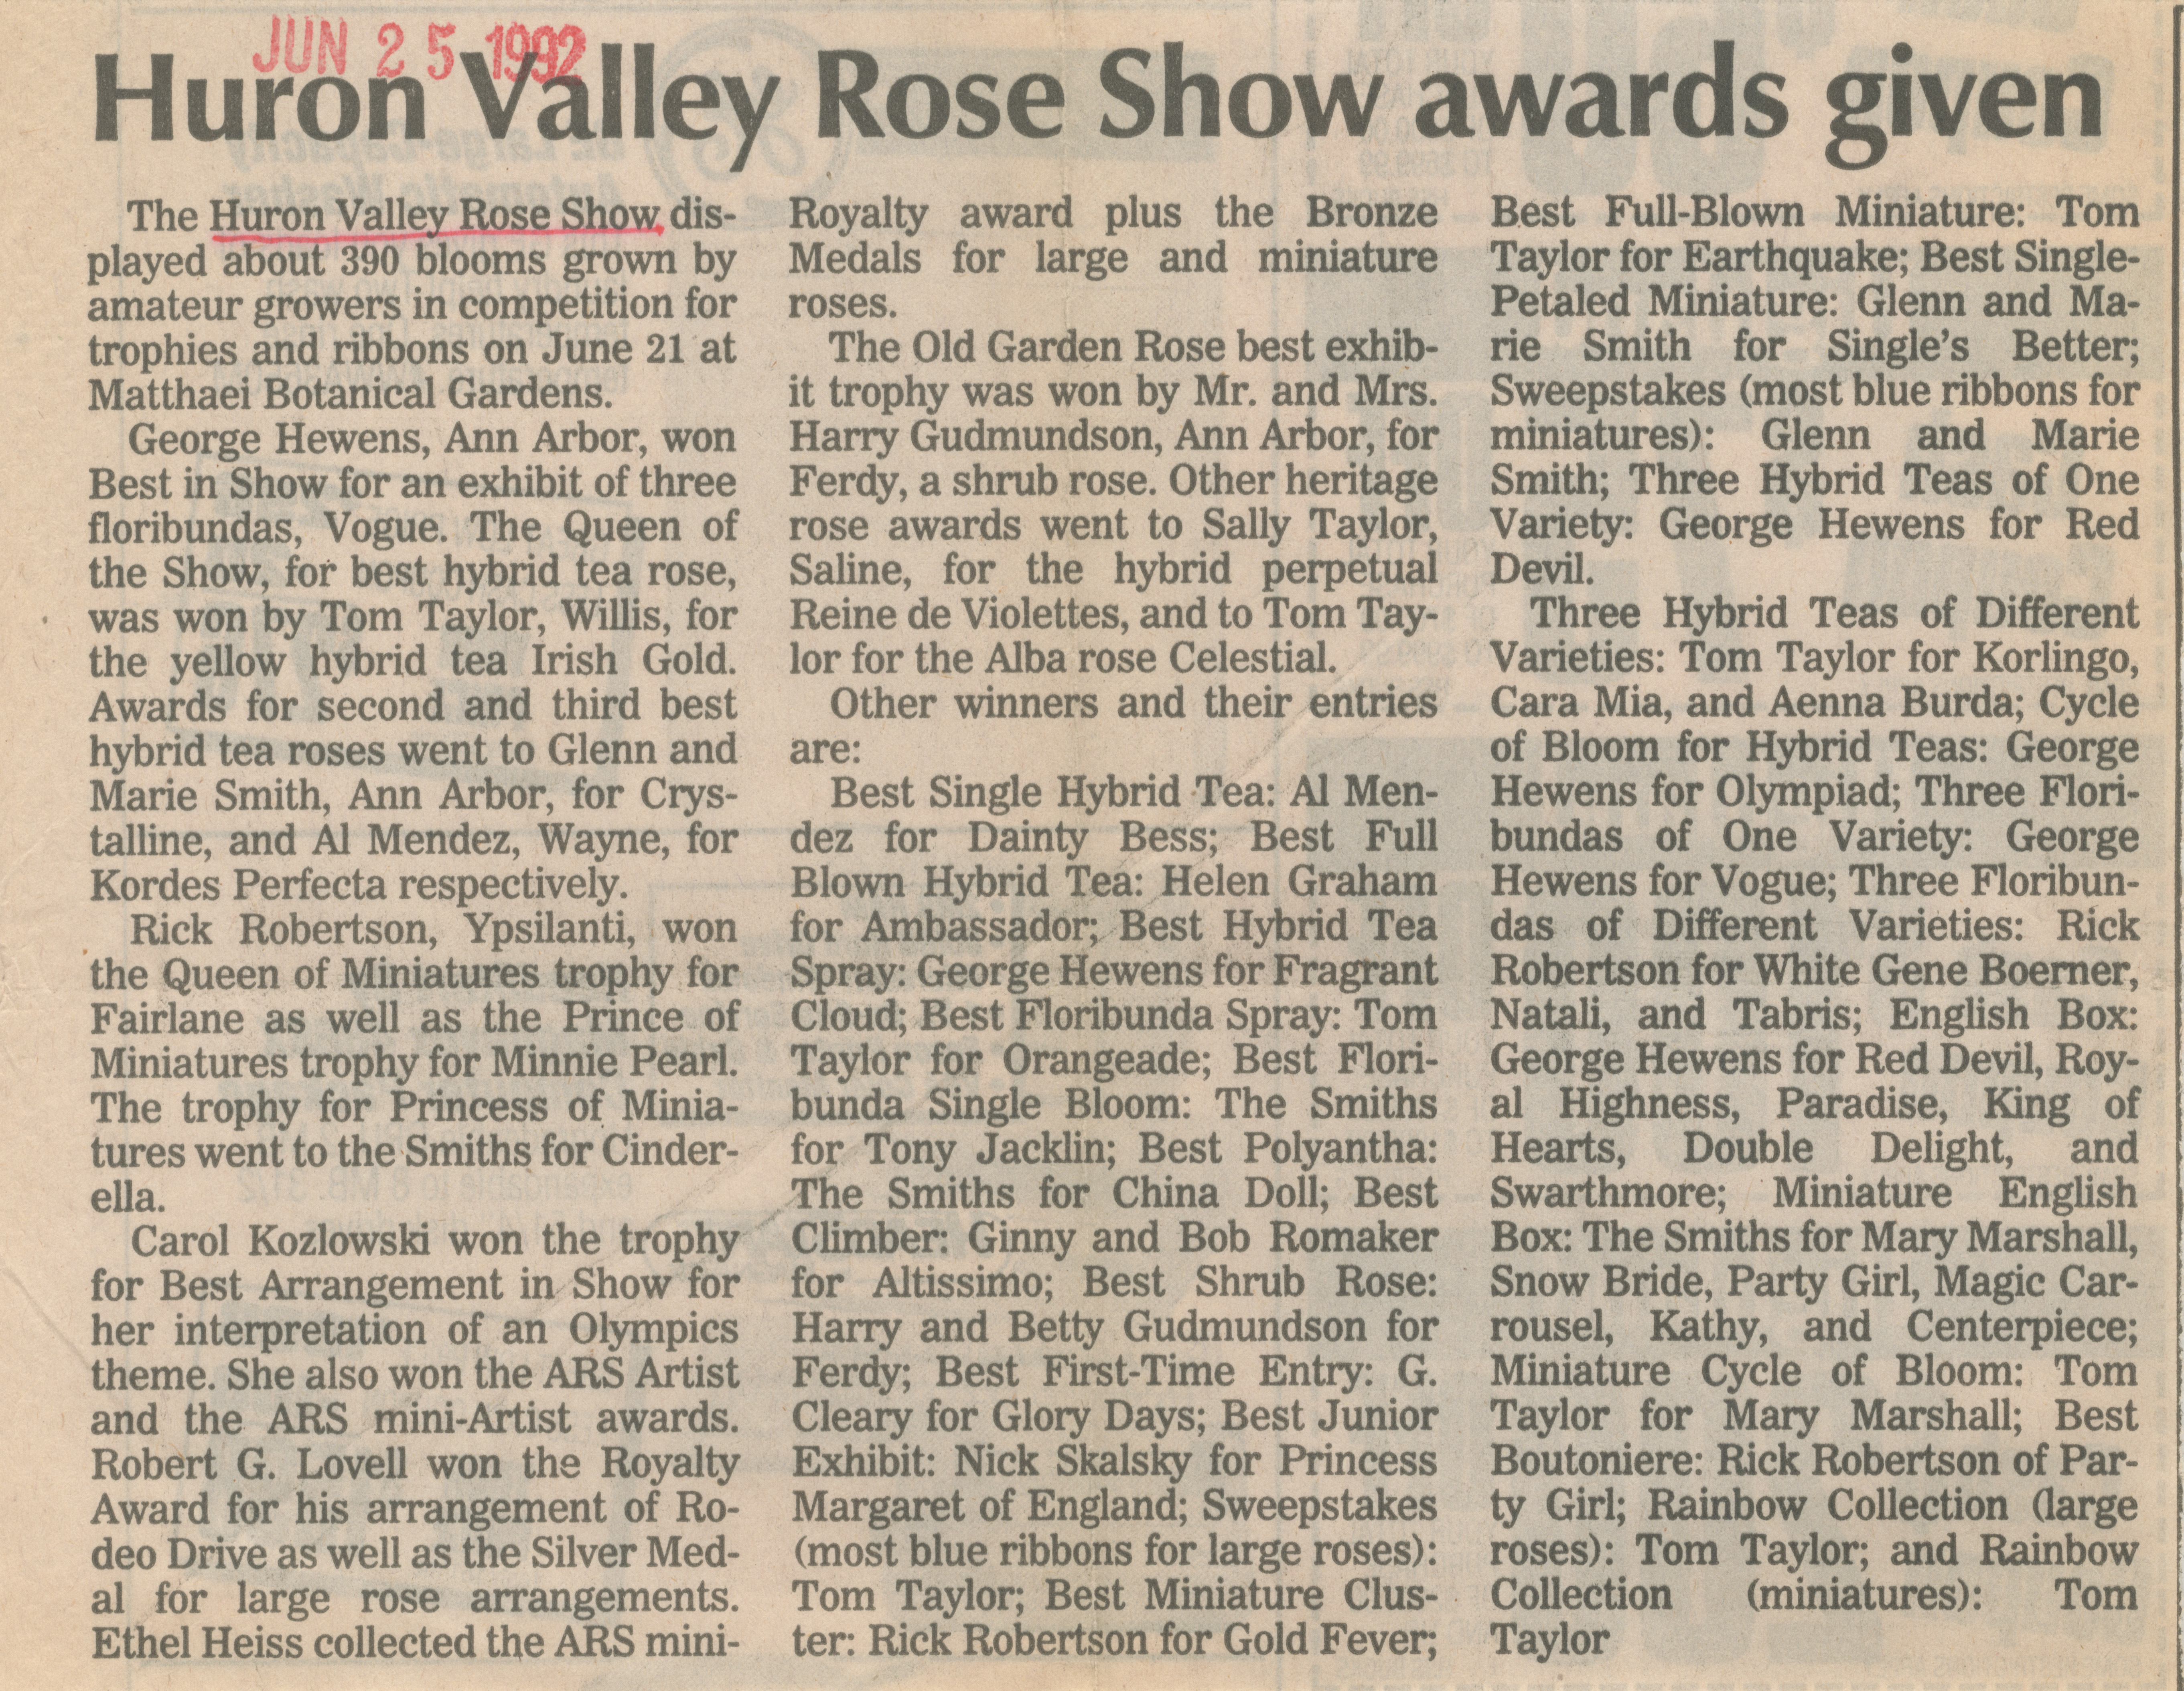 Huron Valley Rose Show awards given image